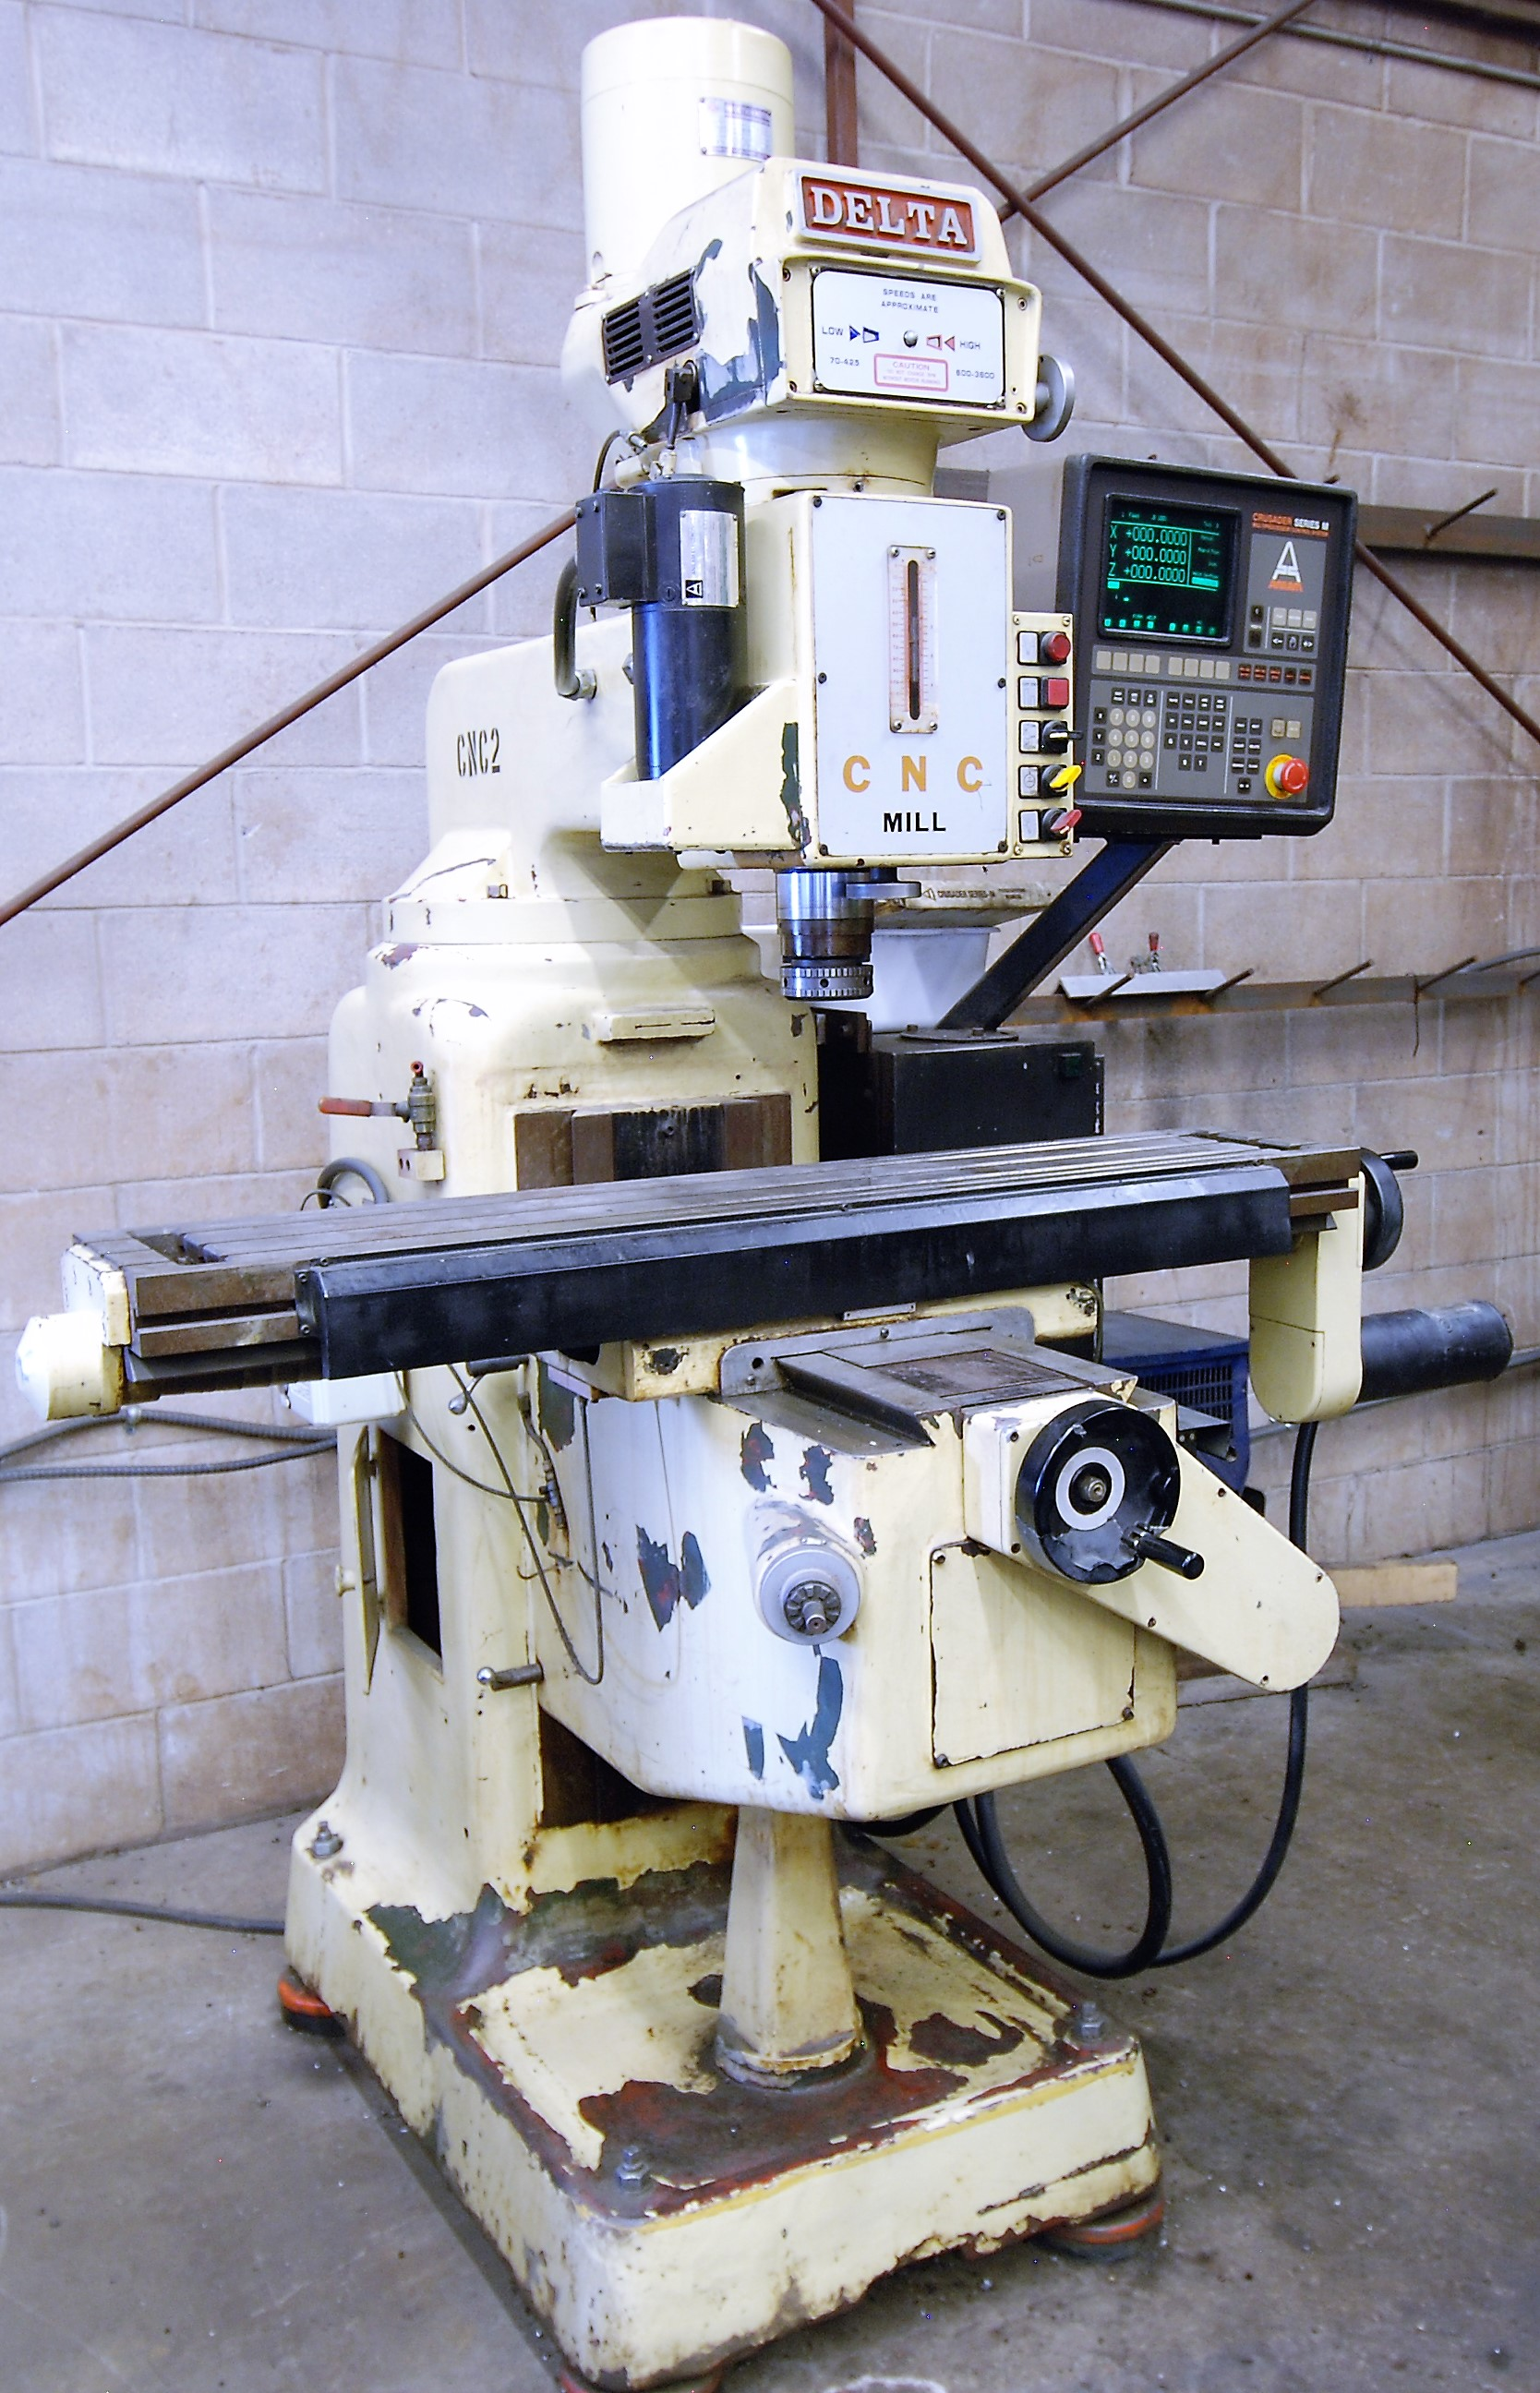 """DELTACNC VERTICAL MILLING MACHINE, ANILAM CRUSADER SERIES M CNC CONTROL, 10"""" x 52"""" TABLE, 3,600"""